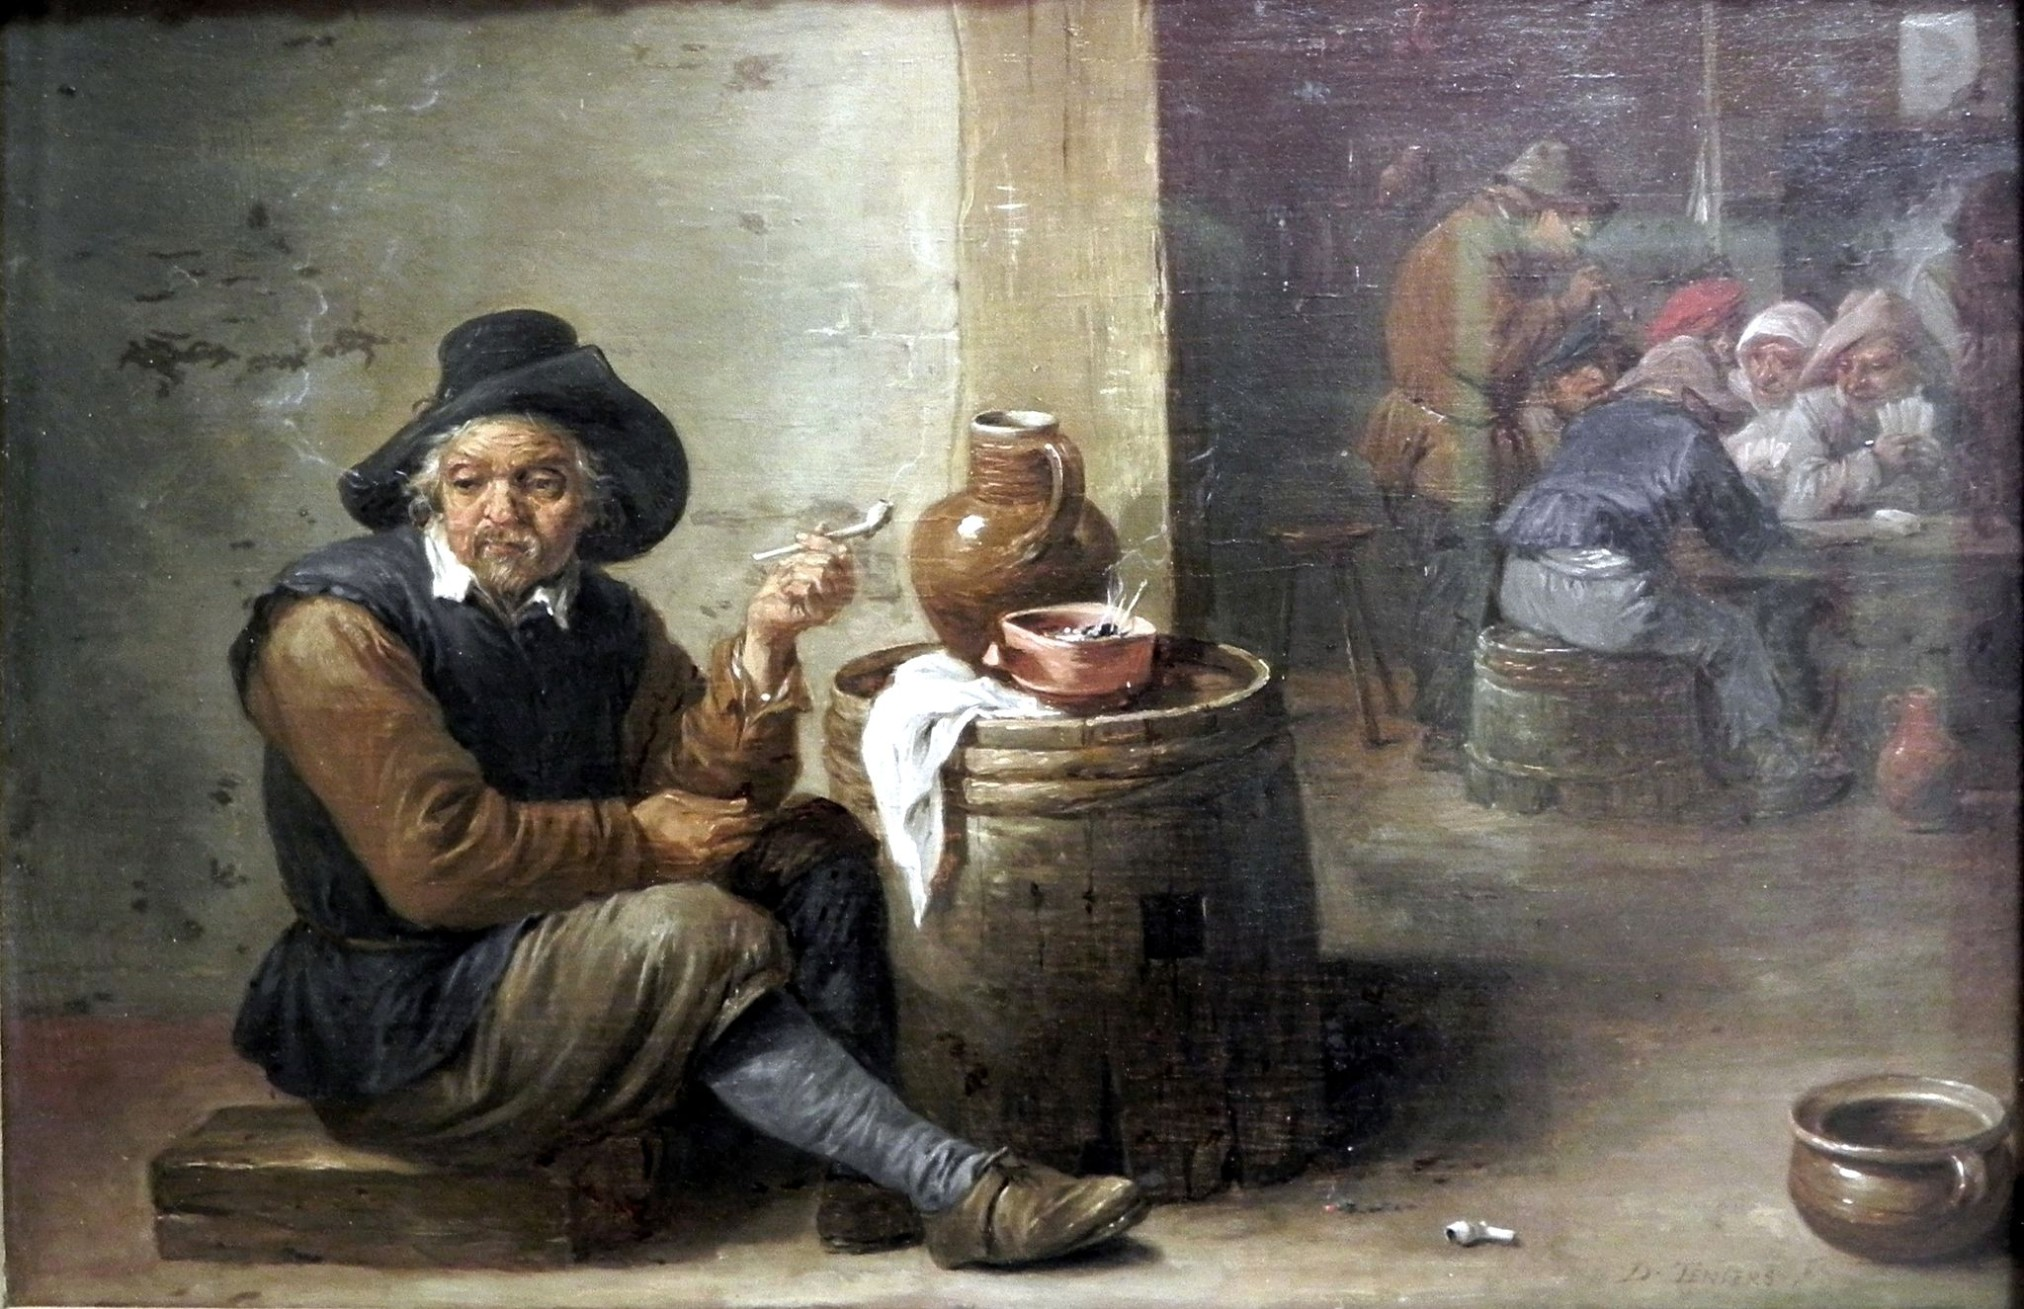 """Alter Raucher"" von David Teniers dem Jüngeren  [Public domain], via Wikimedia Commons"